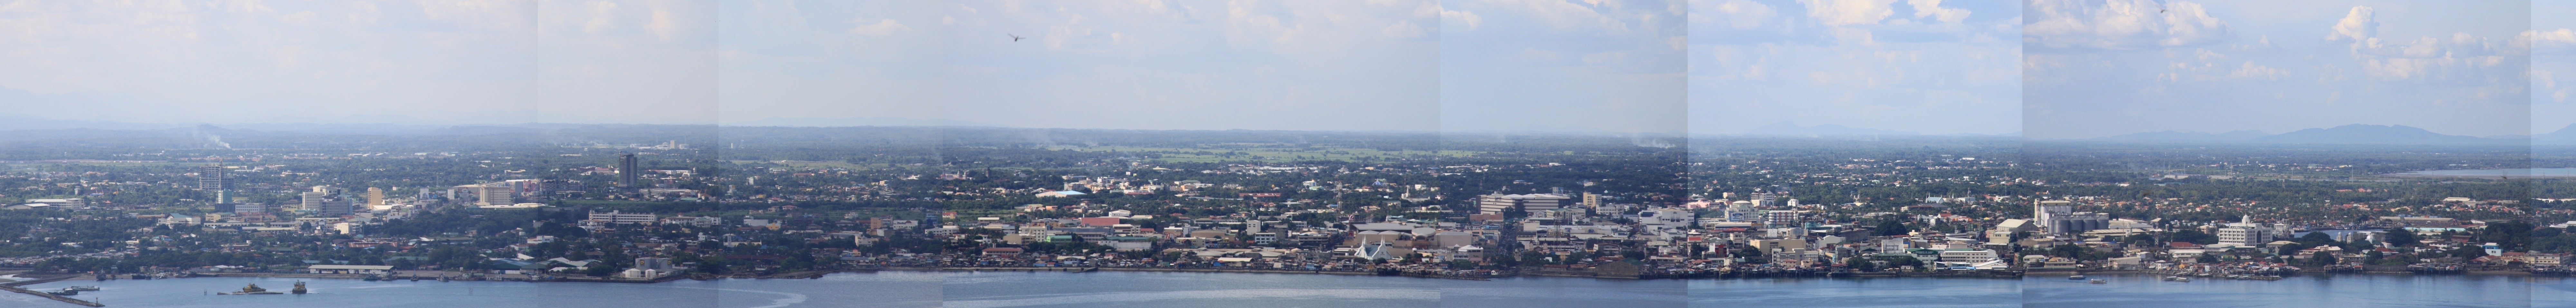 Iloilo Skyline and Cityscape